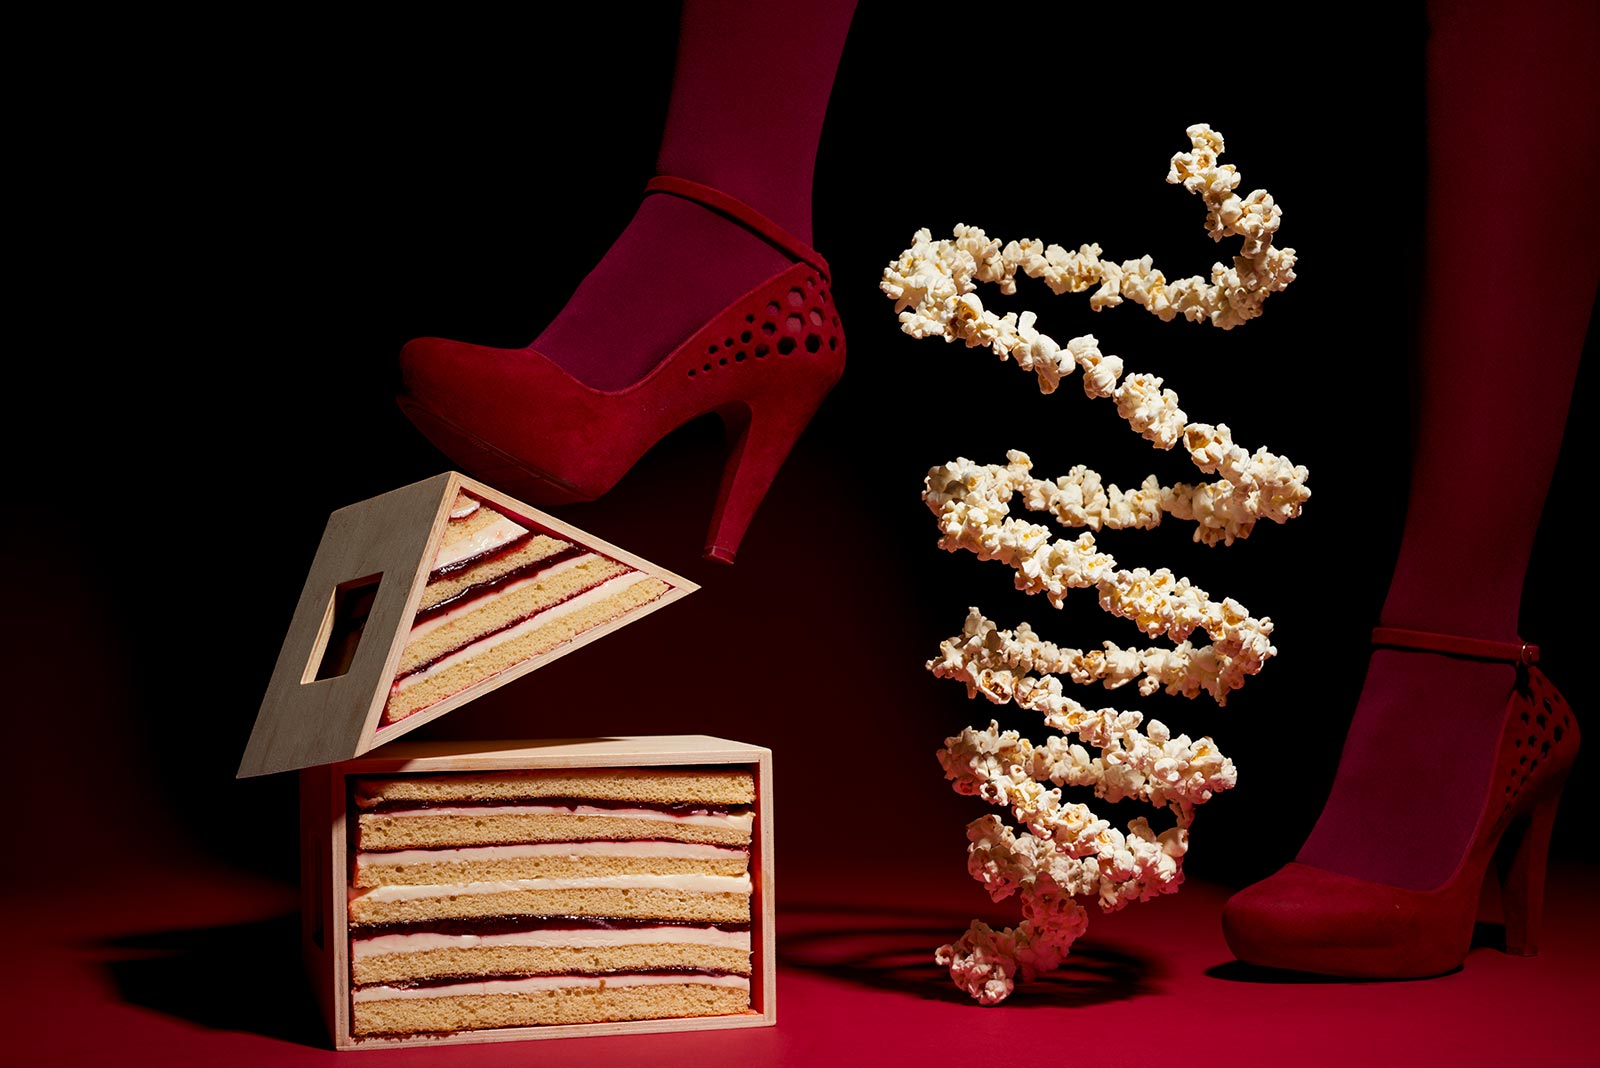 red shoes and tramezzino Claudia ficca food stylist Fuorizona food agency